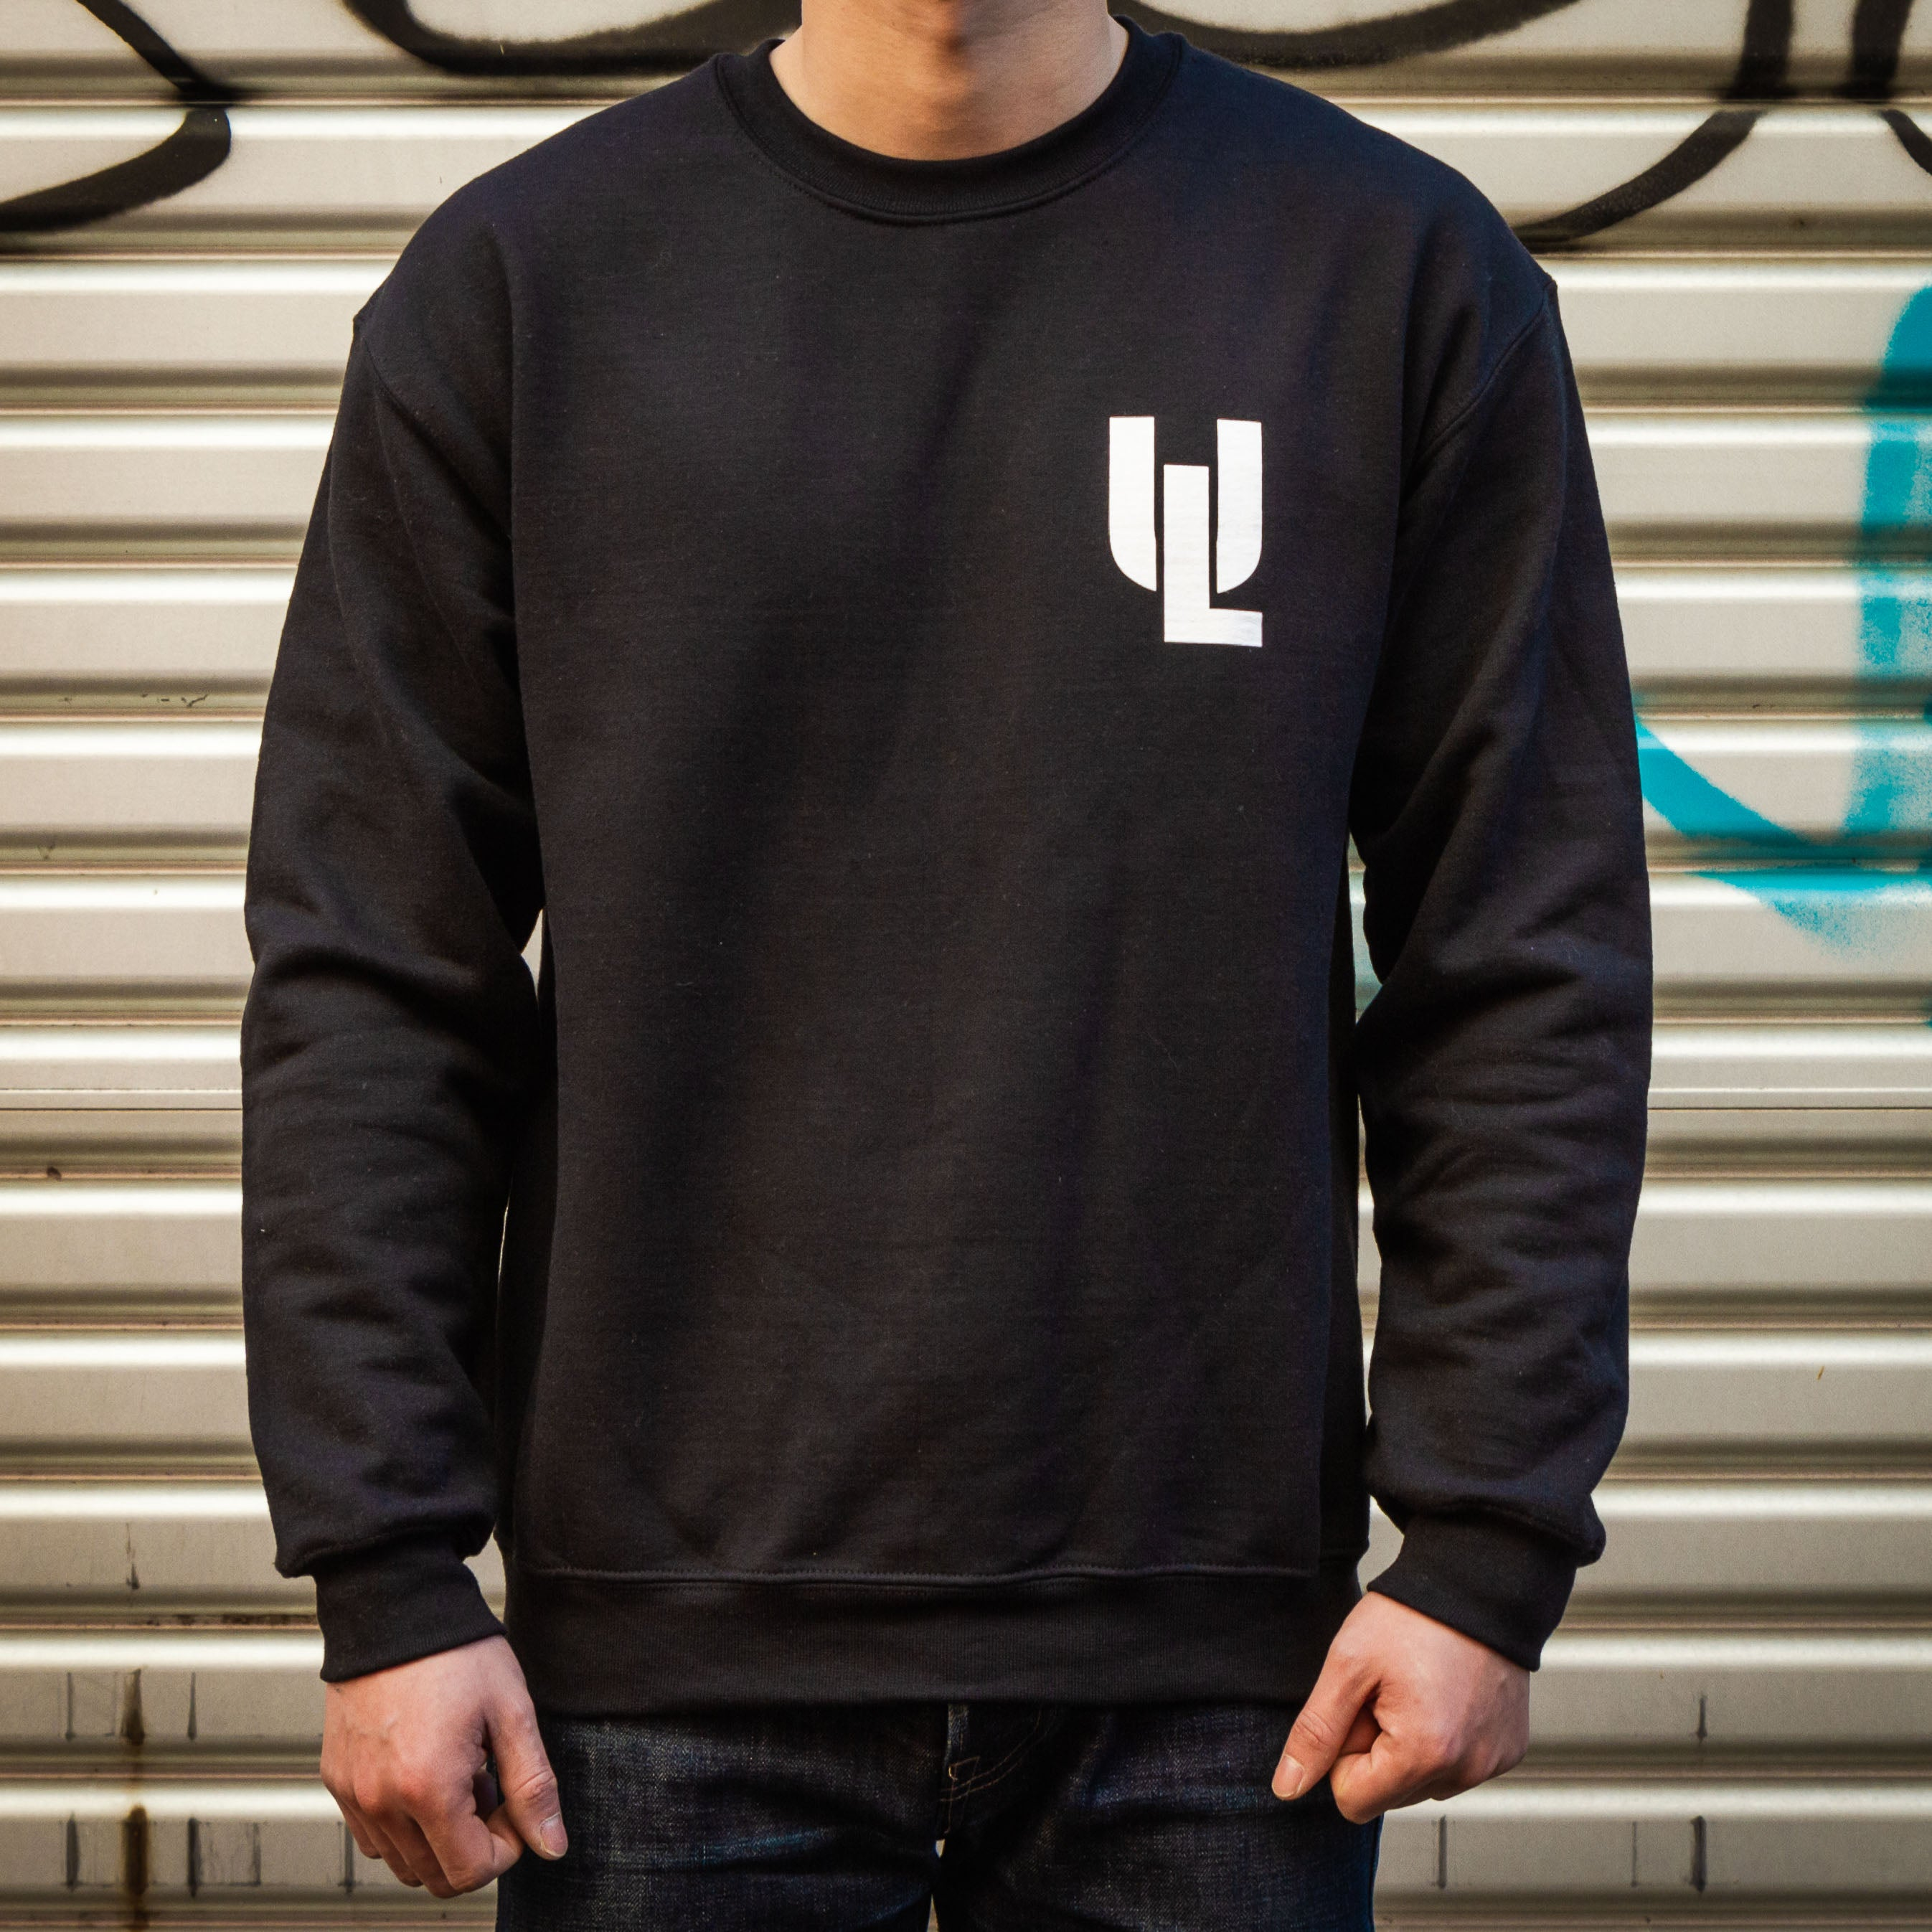 Load image into Gallery viewer, URBAN LUPE Store Sweatshirt in Black